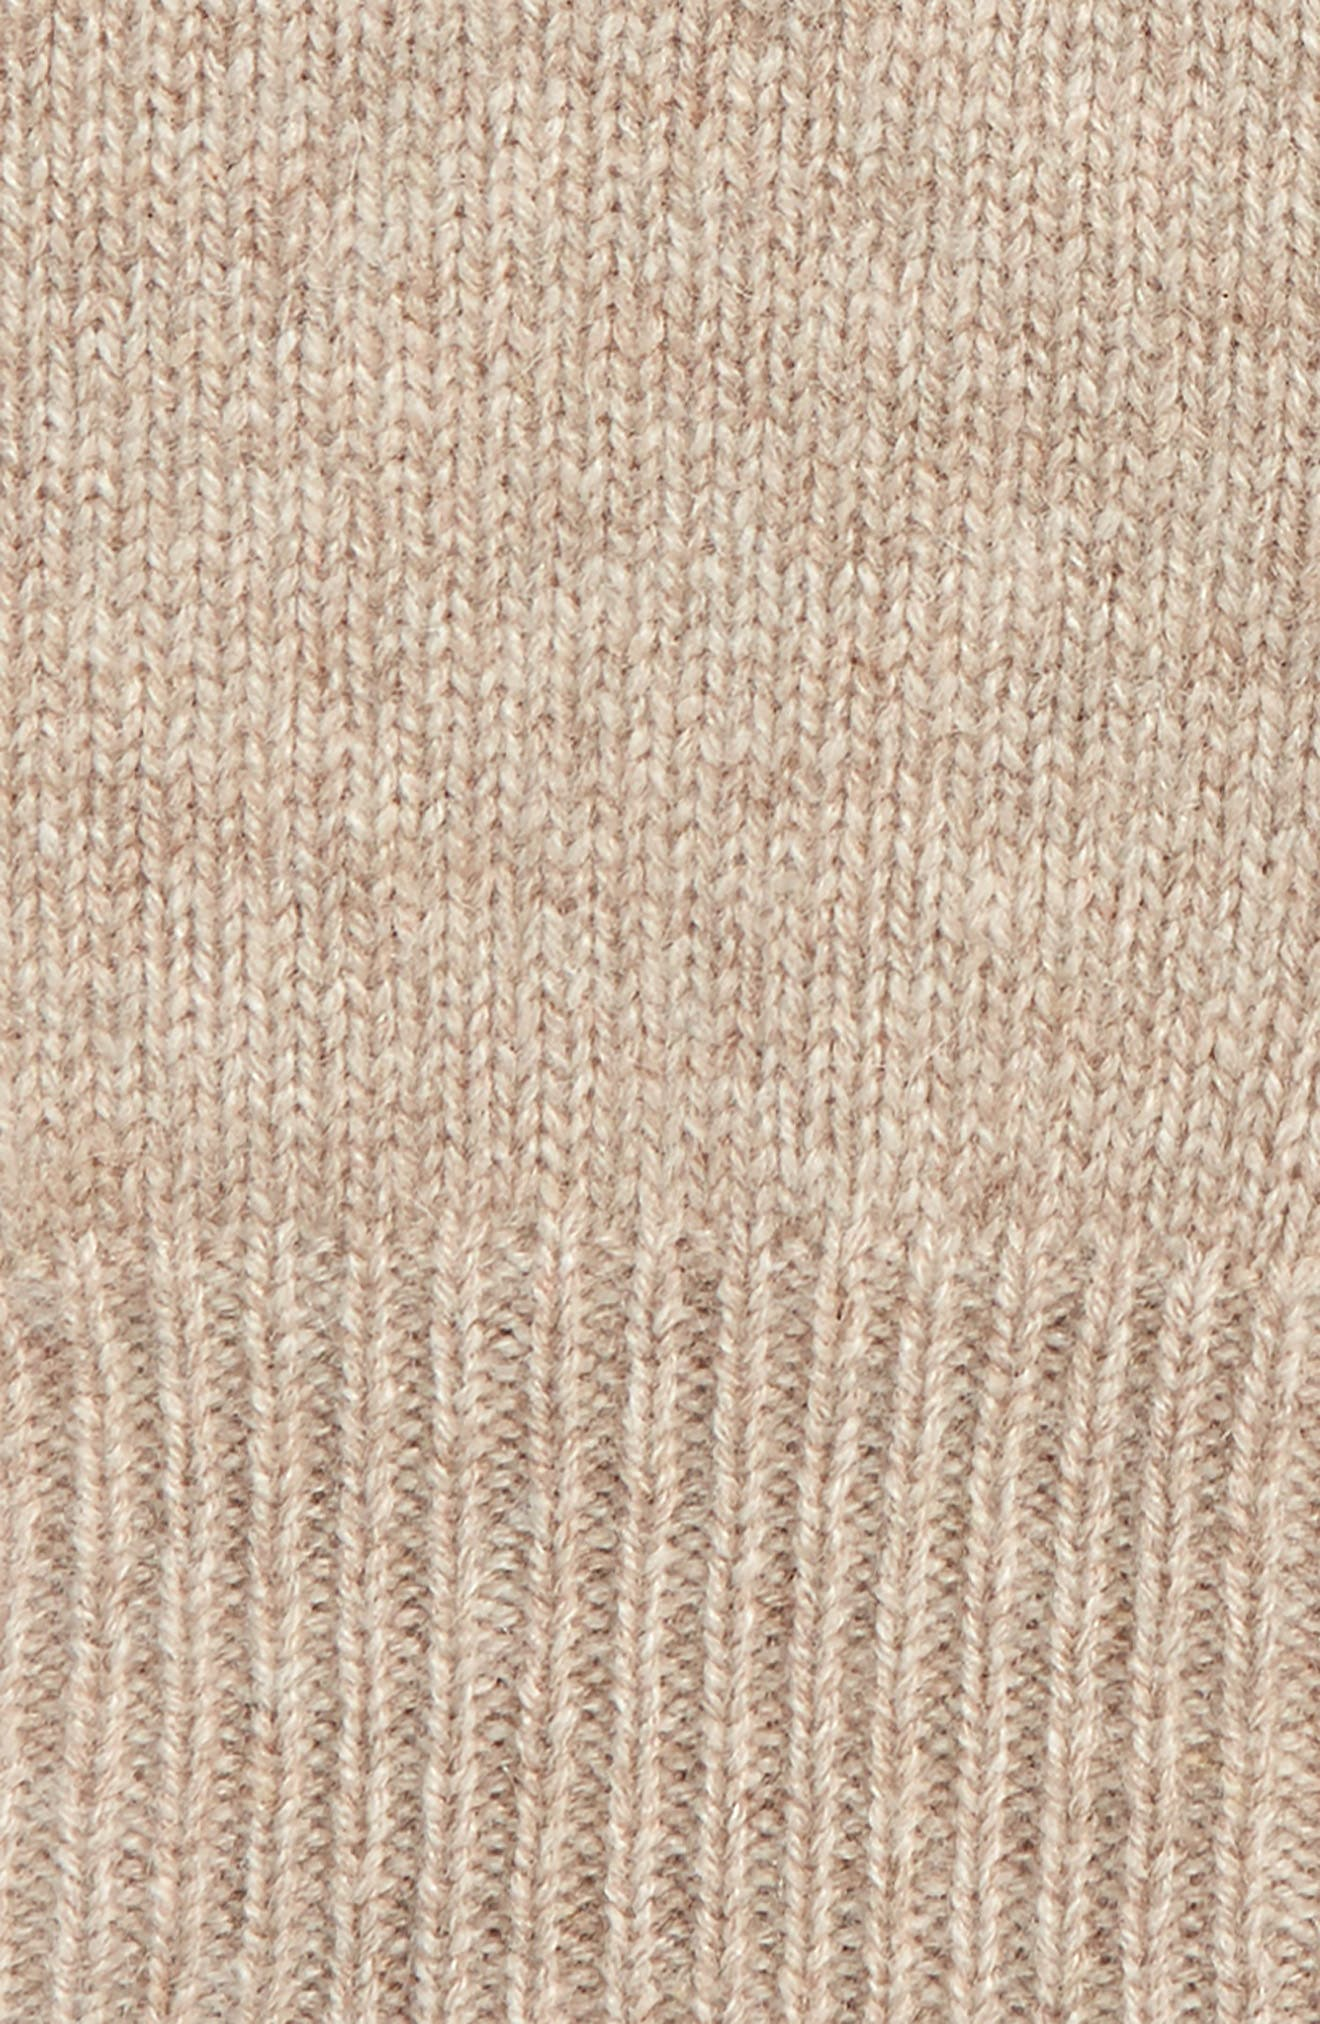 Rib Knit Cashmere Gloves,                             Alternate thumbnail 2, color,                             BEIGE OATMEAL DARK HTR